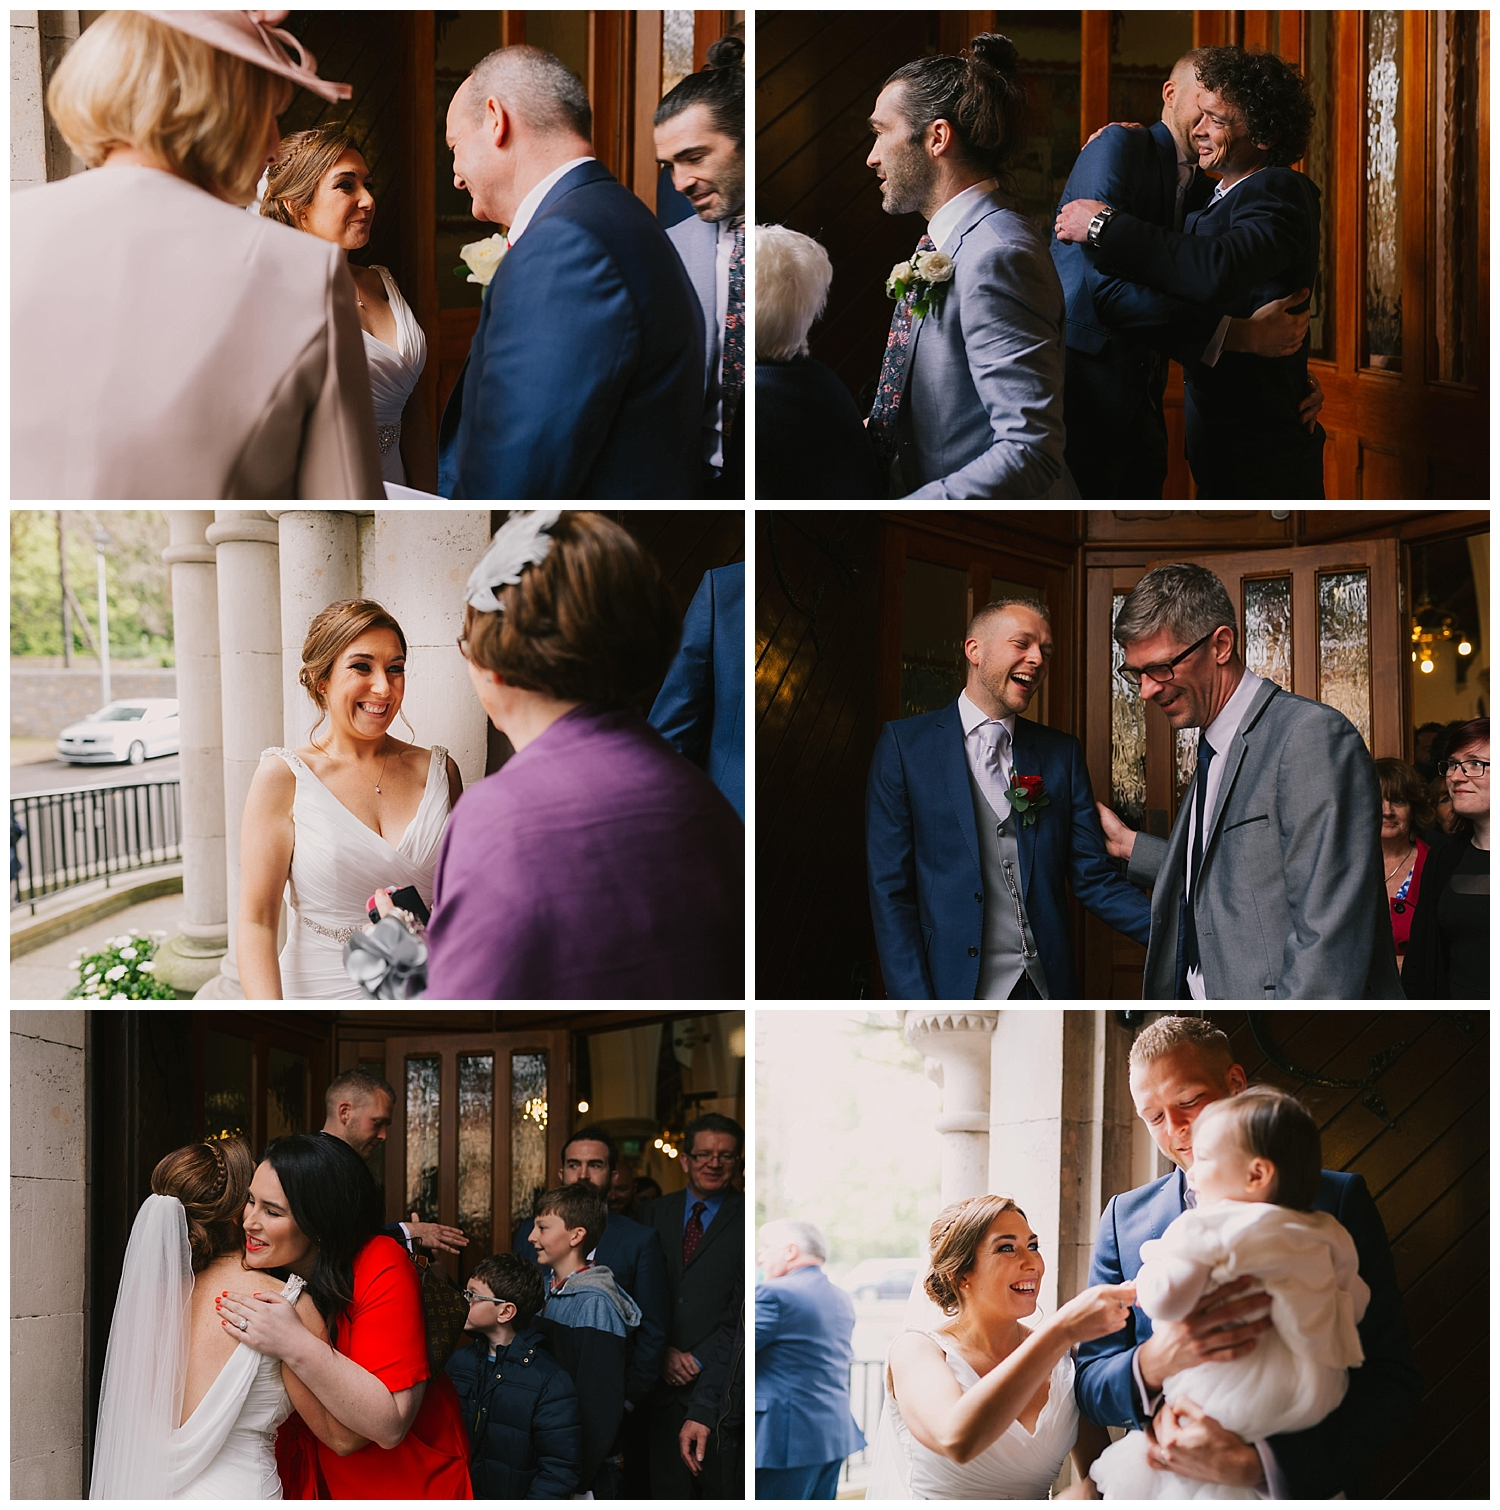 Barberstown_Castle_Wedding_Photographer_Livia_Figueiredo_340.jpg